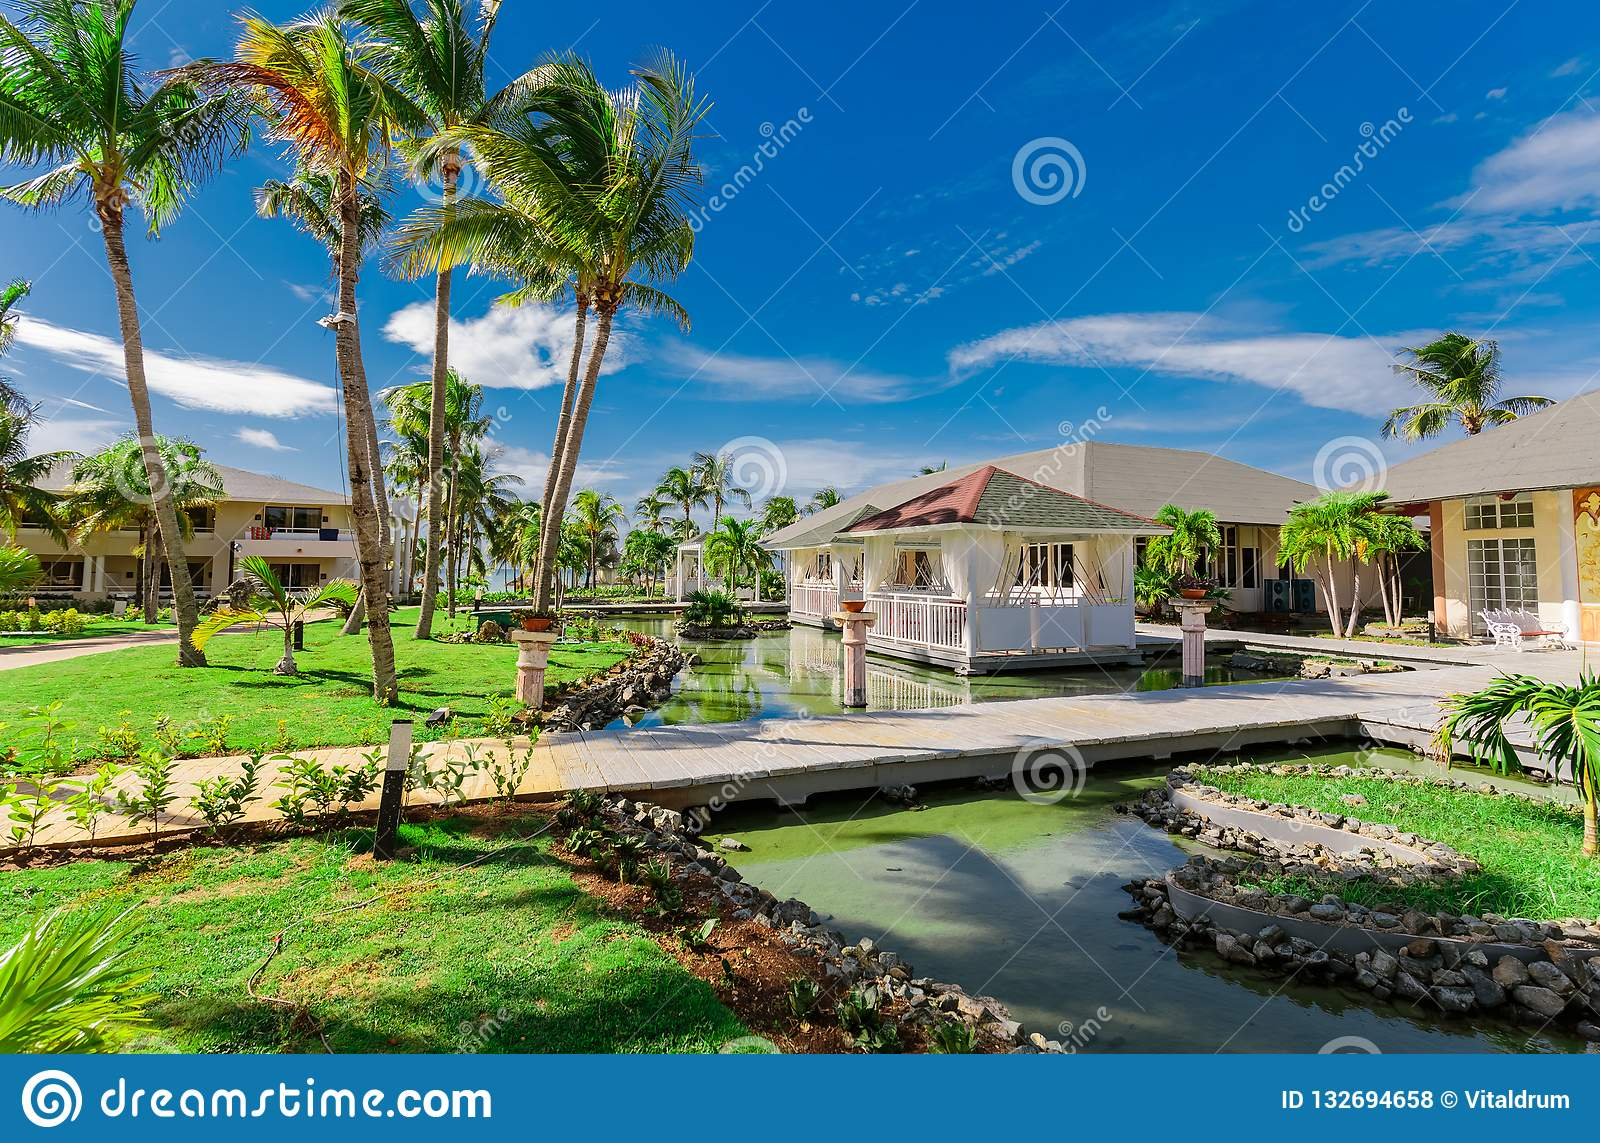 Amazing Natural Landscape View Of Resort Grounds And Restaurant Buildings In Tropical Garden Surrounded By Water On Sunny Gorgeou Editorial Stock Photo Image Of Relax Landscape 132694658